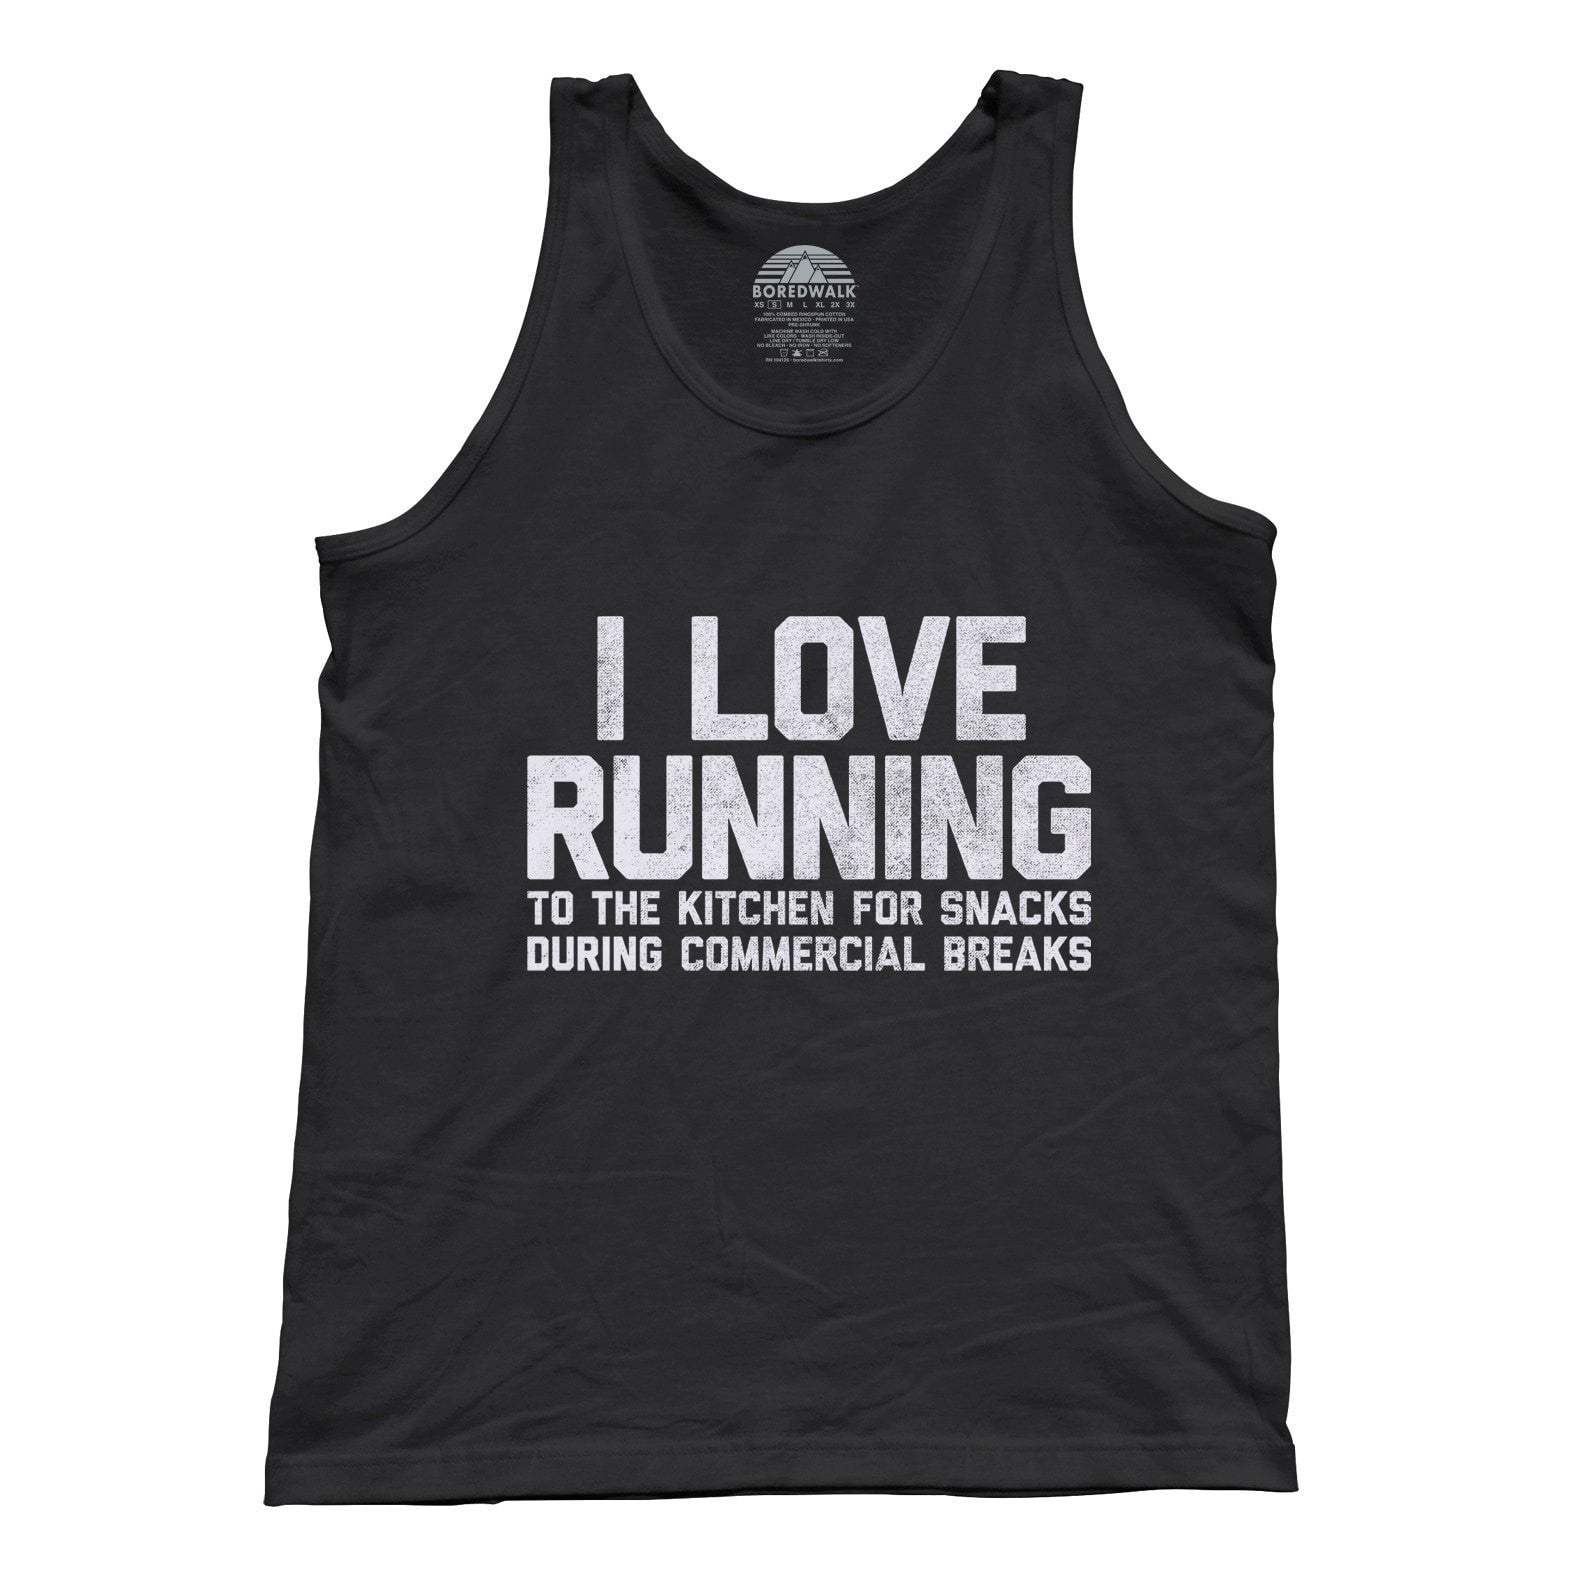 Unisex I Love Running to the Kitchen for Snacks Tank Top